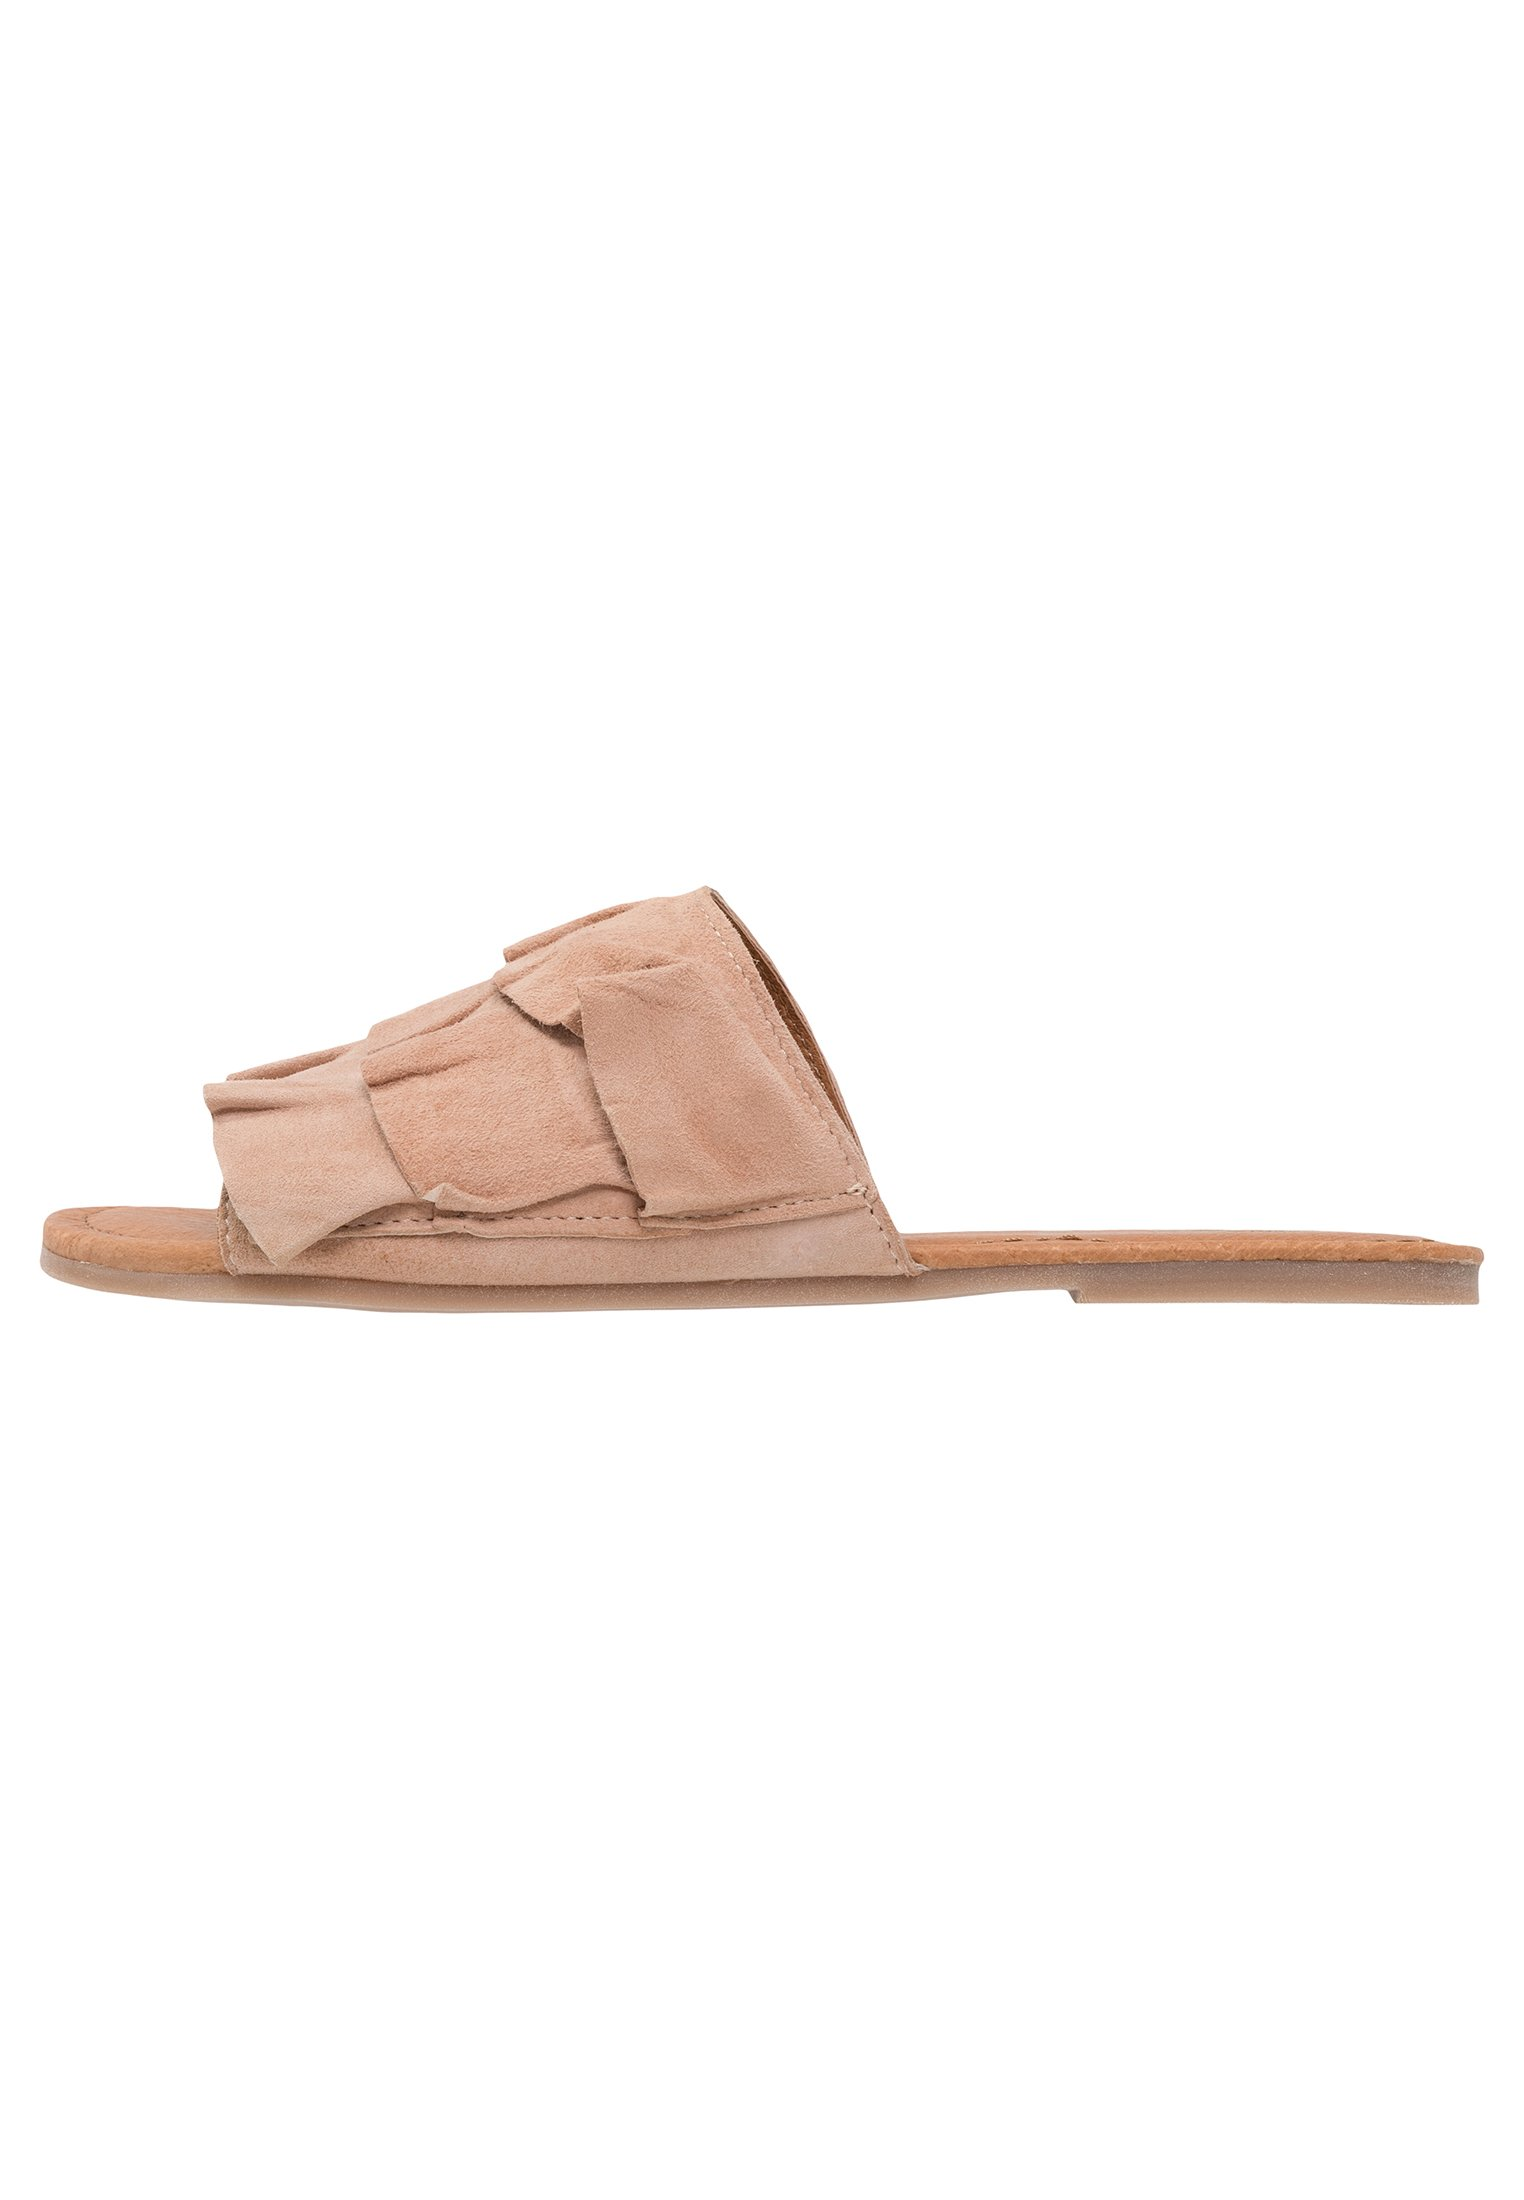 Apple Of Eden Shelby - Mules Nude